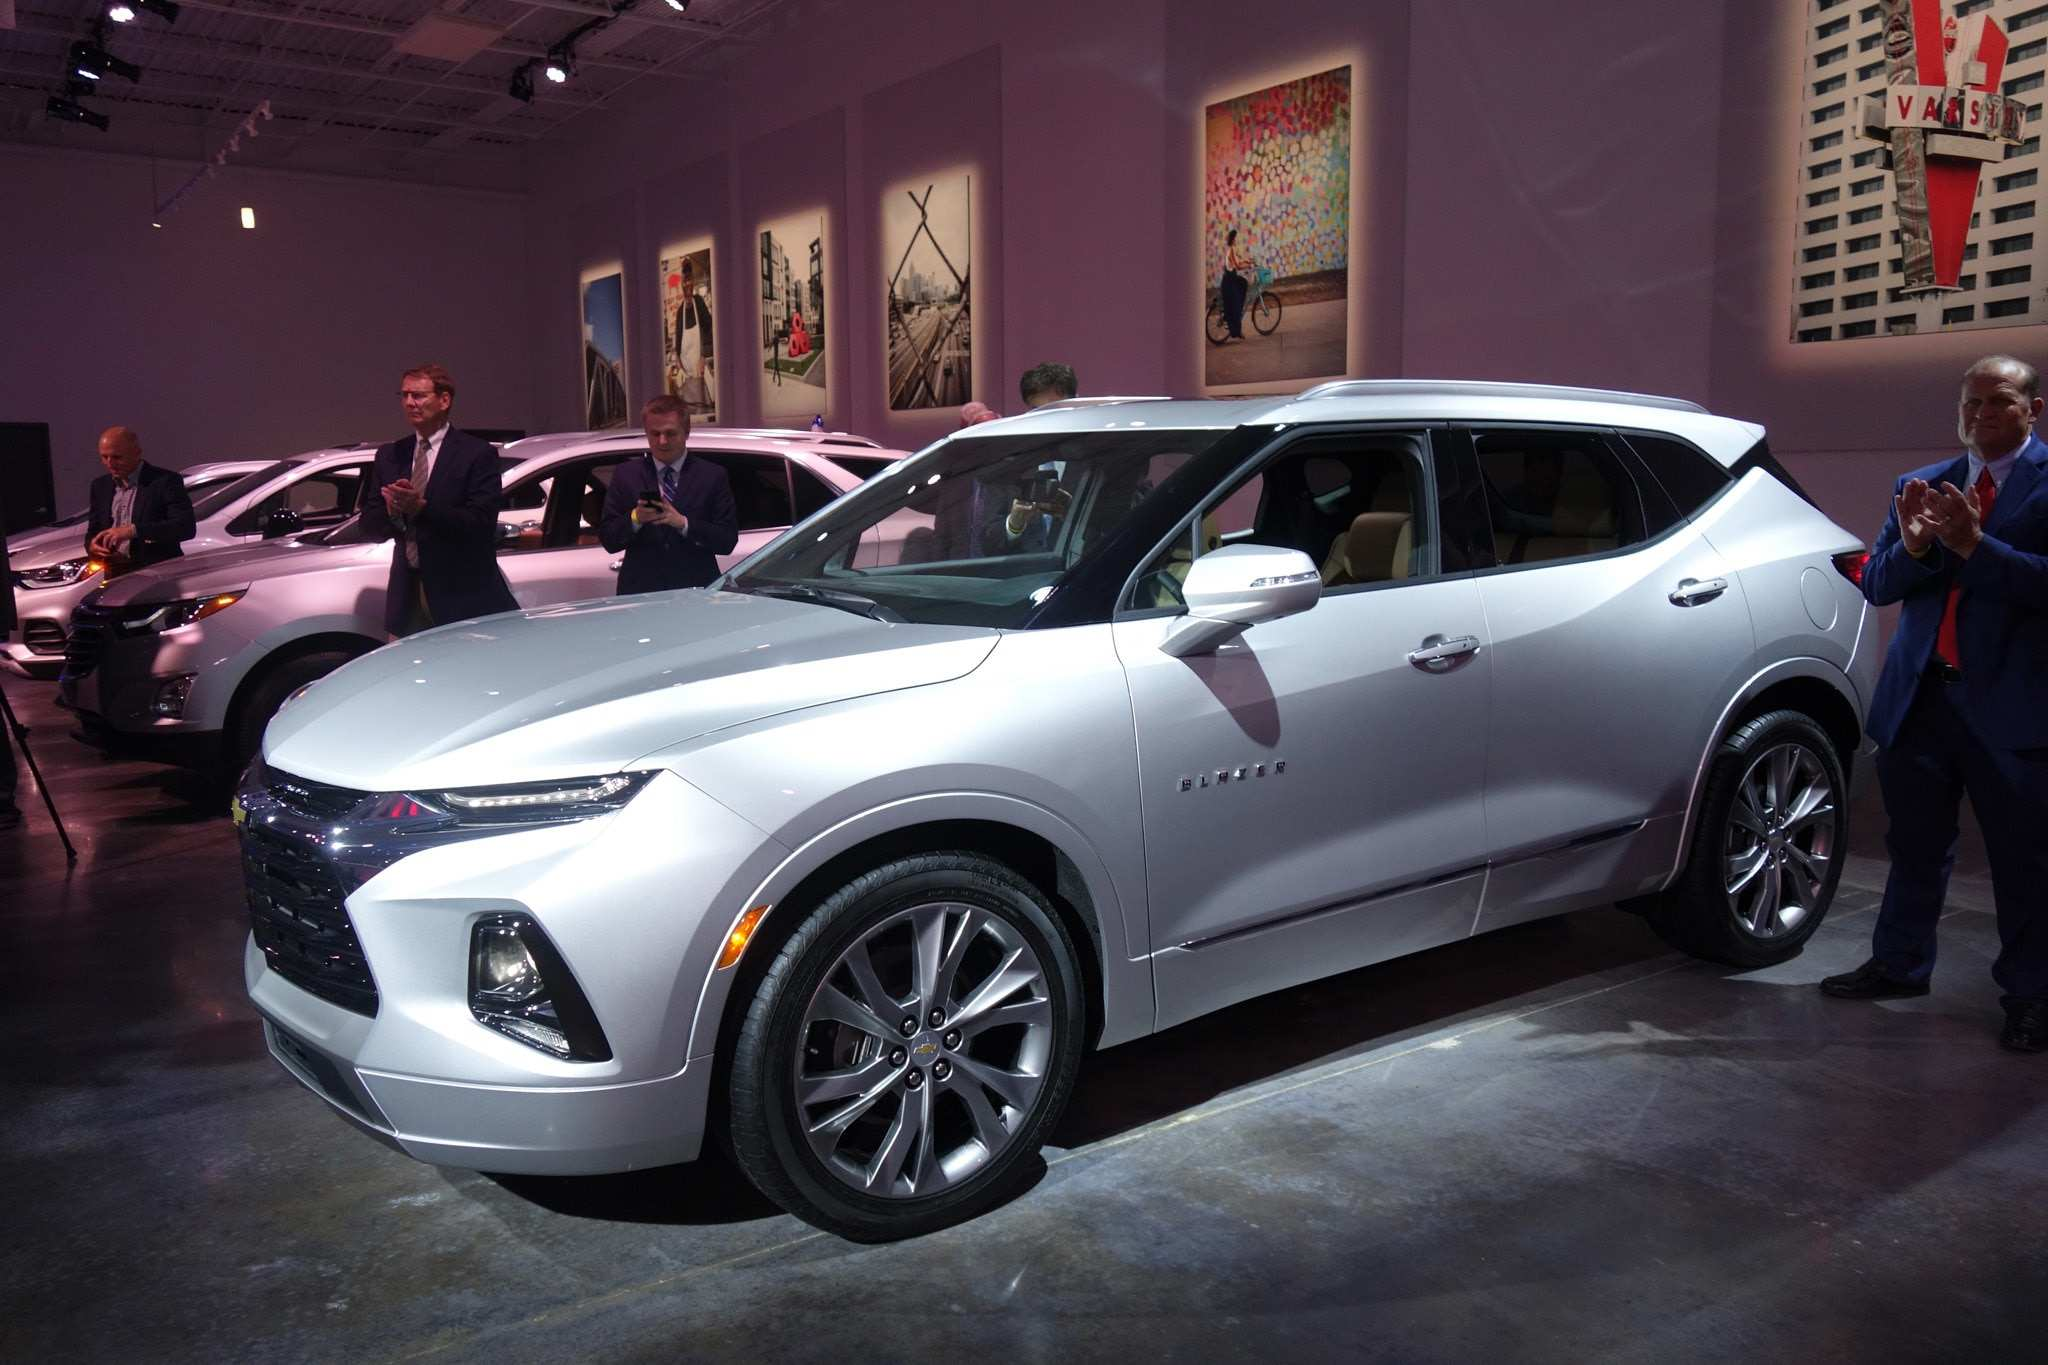 55 New 2019 Chevrolet Blazer Release Date Prices for 2019 Chevrolet Blazer Release Date